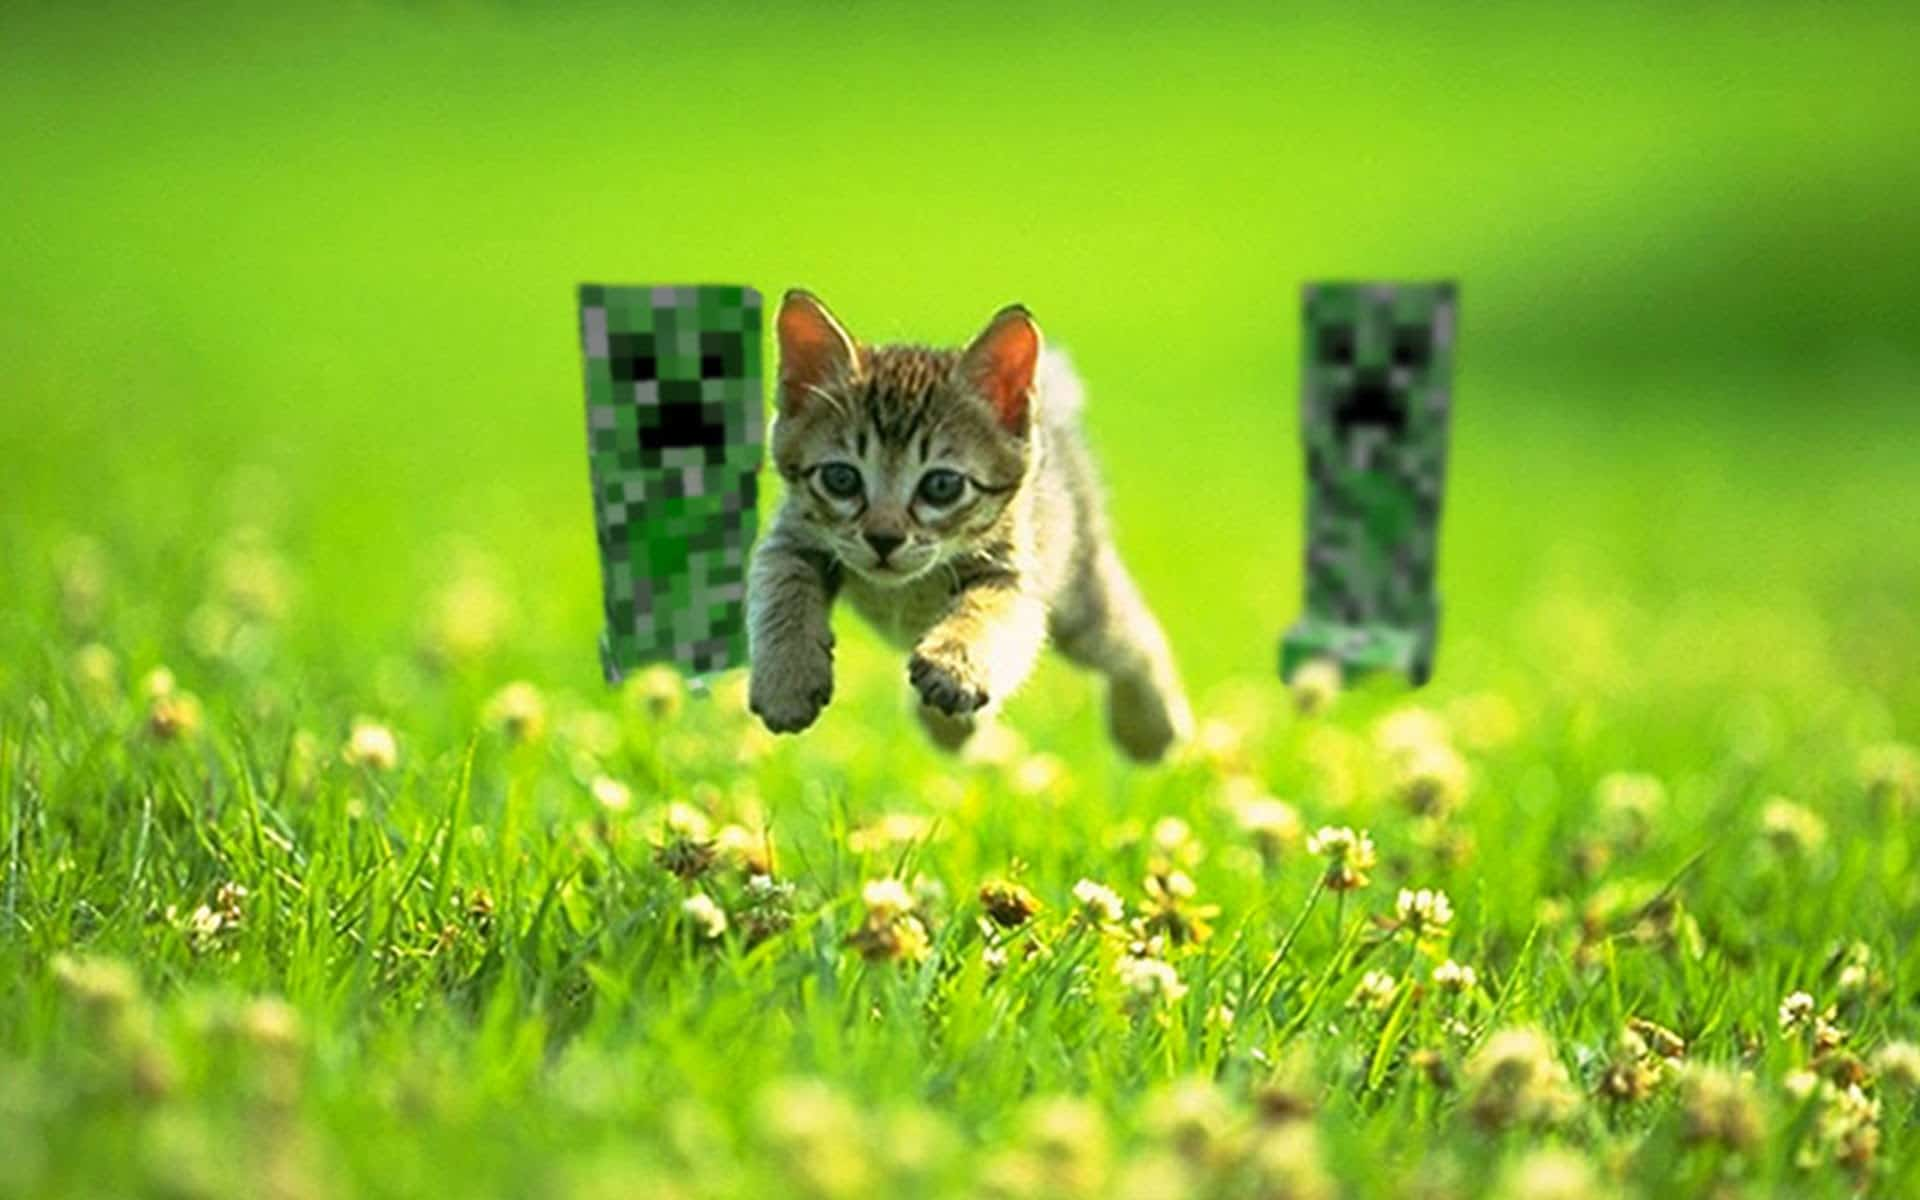 Minecraft creeper chasing cat background